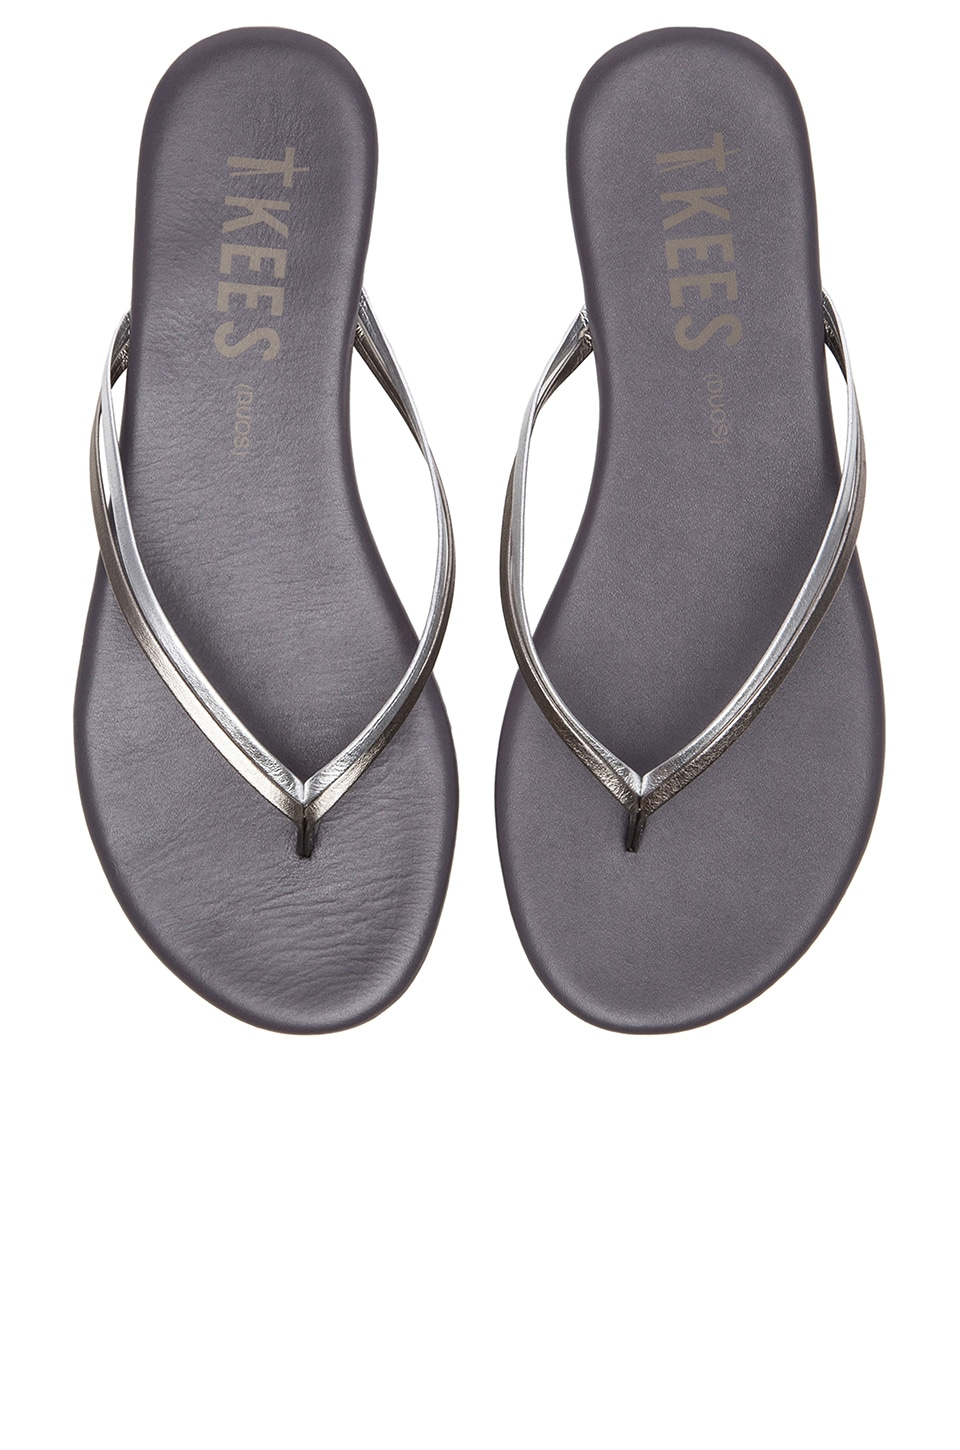 TKEES Sandal in Silver Shadowns